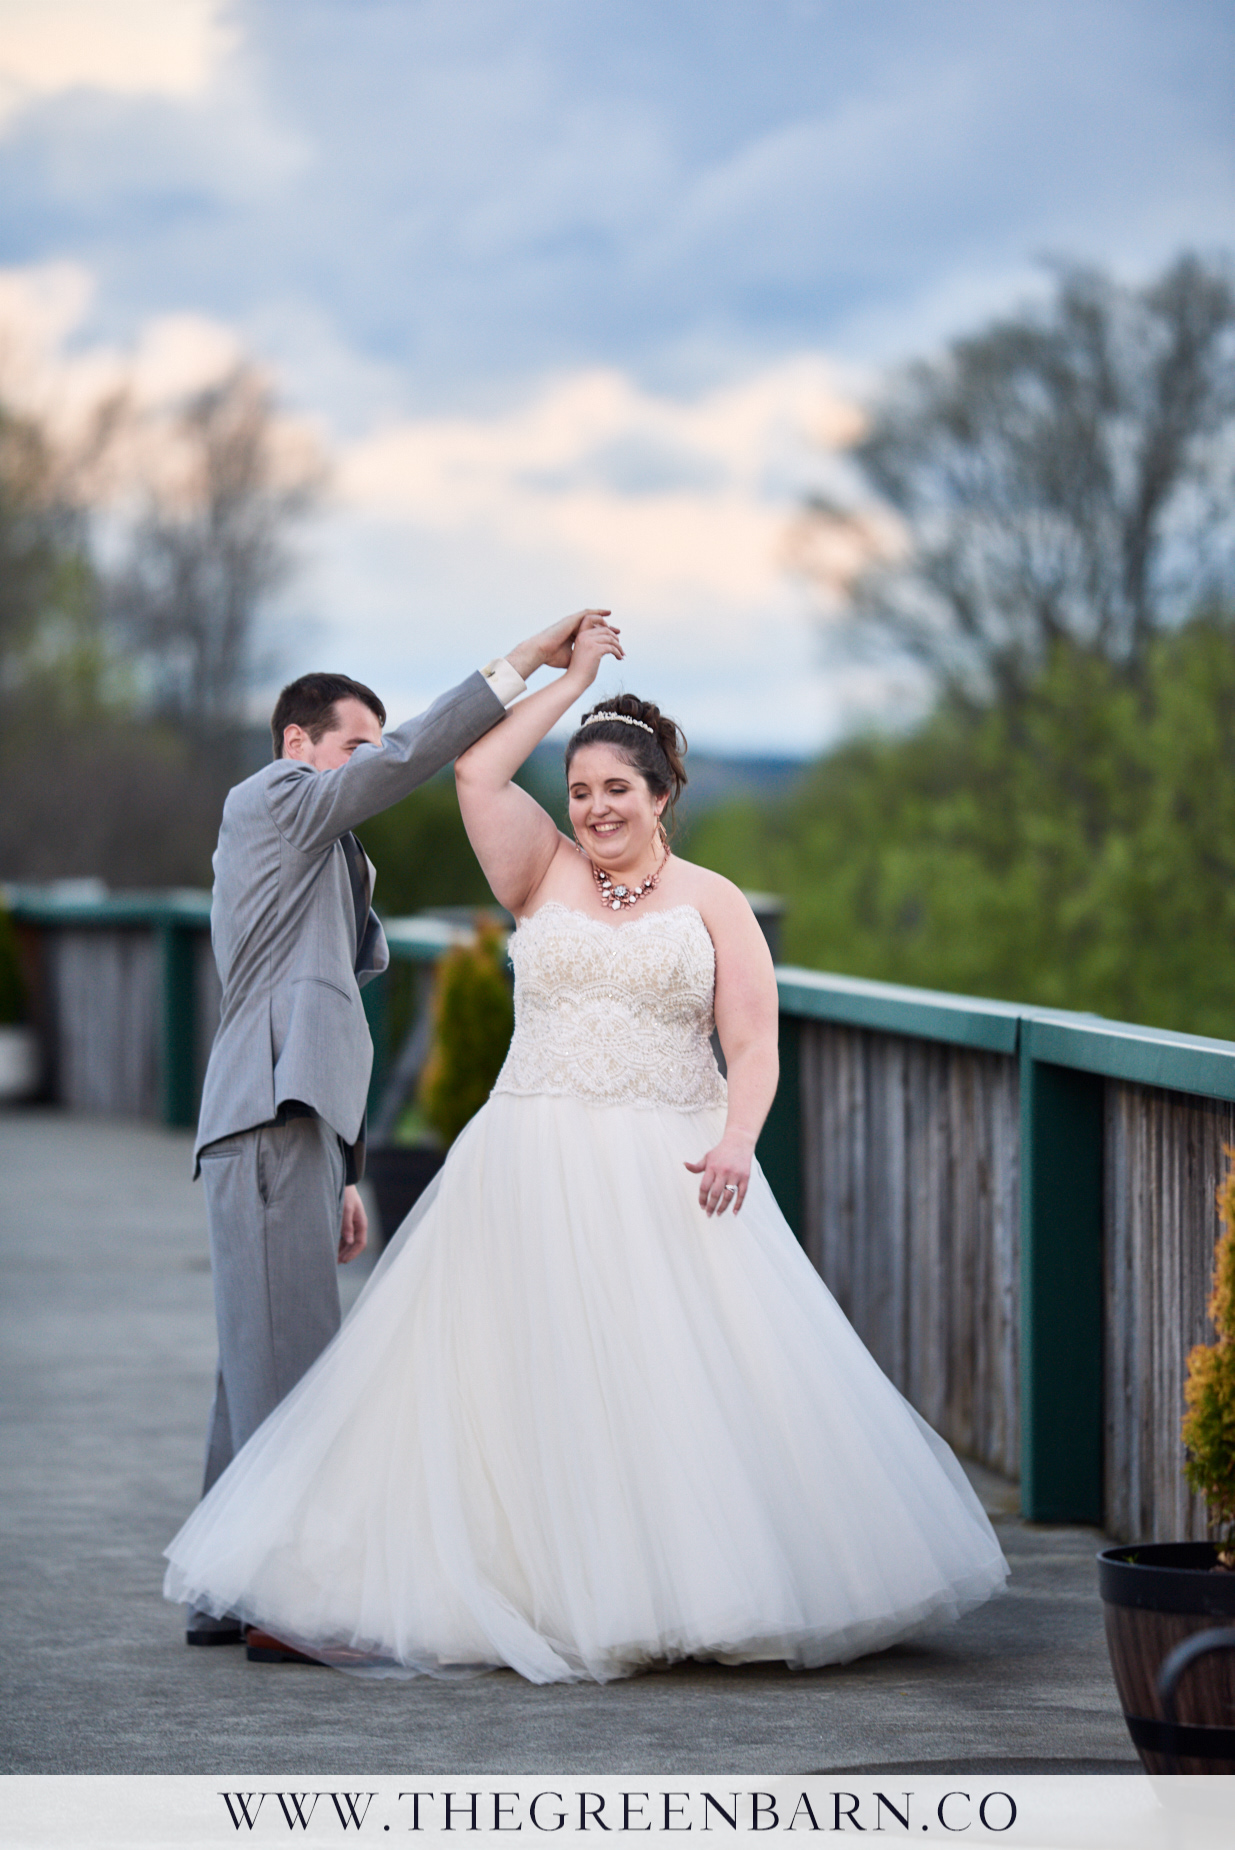 Bride and Groom Dancing Together at Sunset at their Country Club Wedding near Burlington, VT